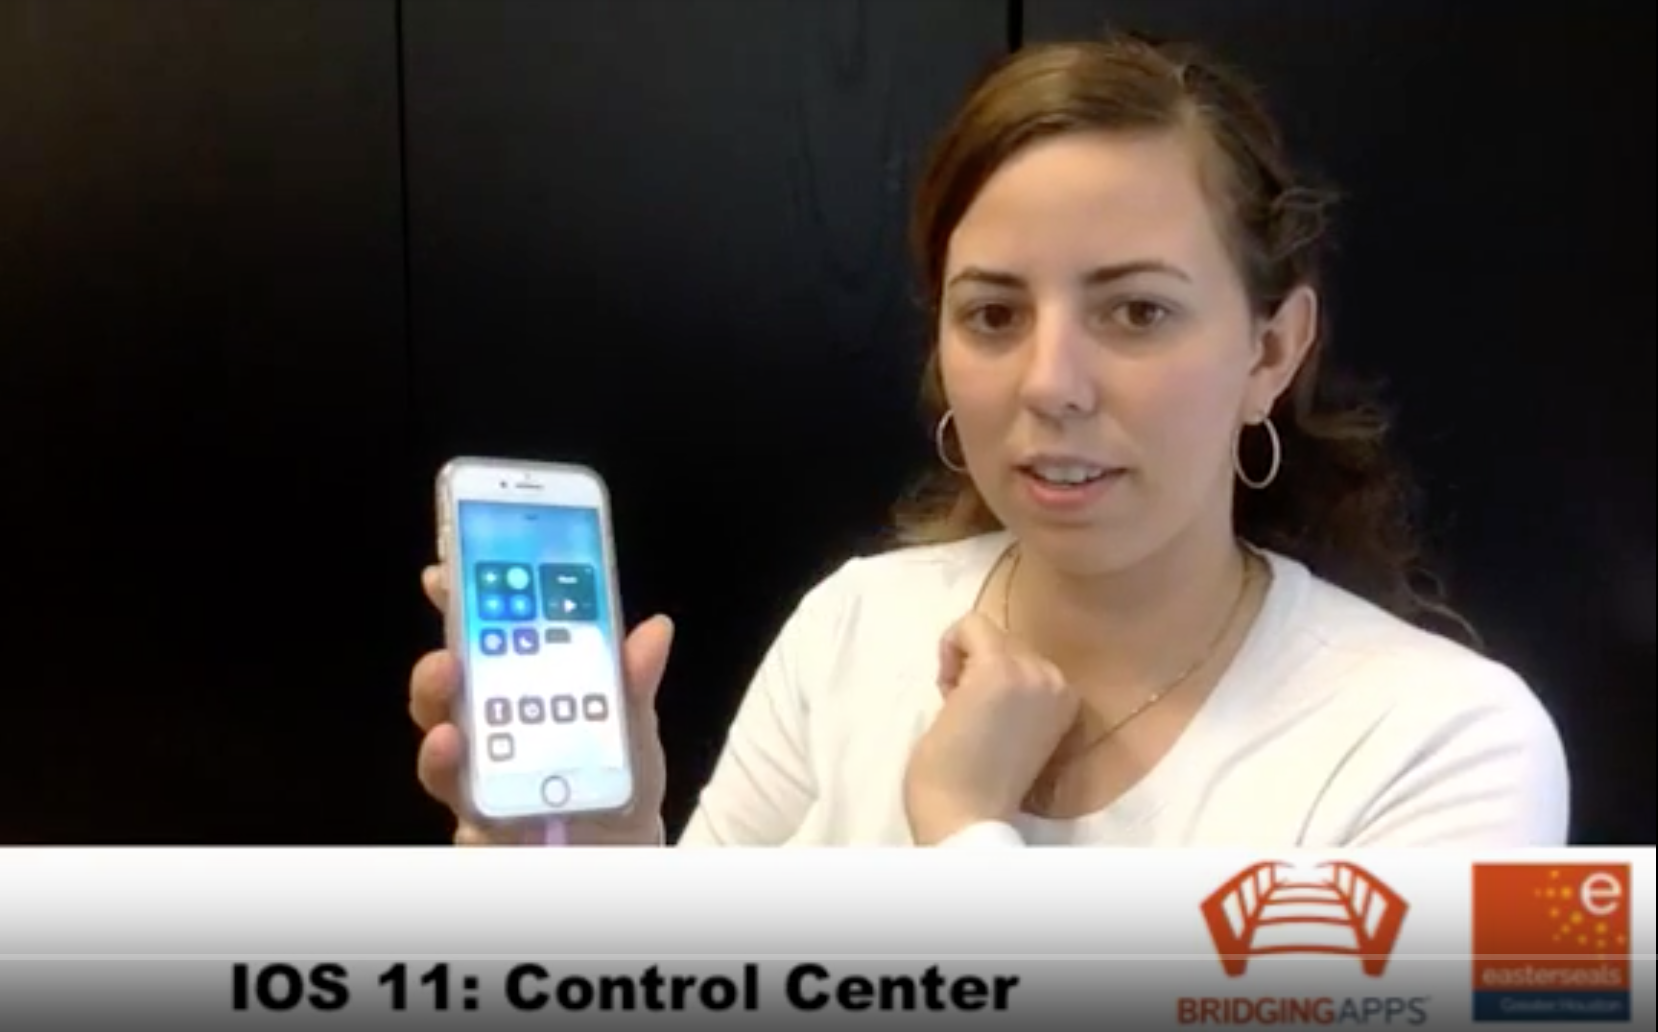 How to Use iOS 11 Control Center